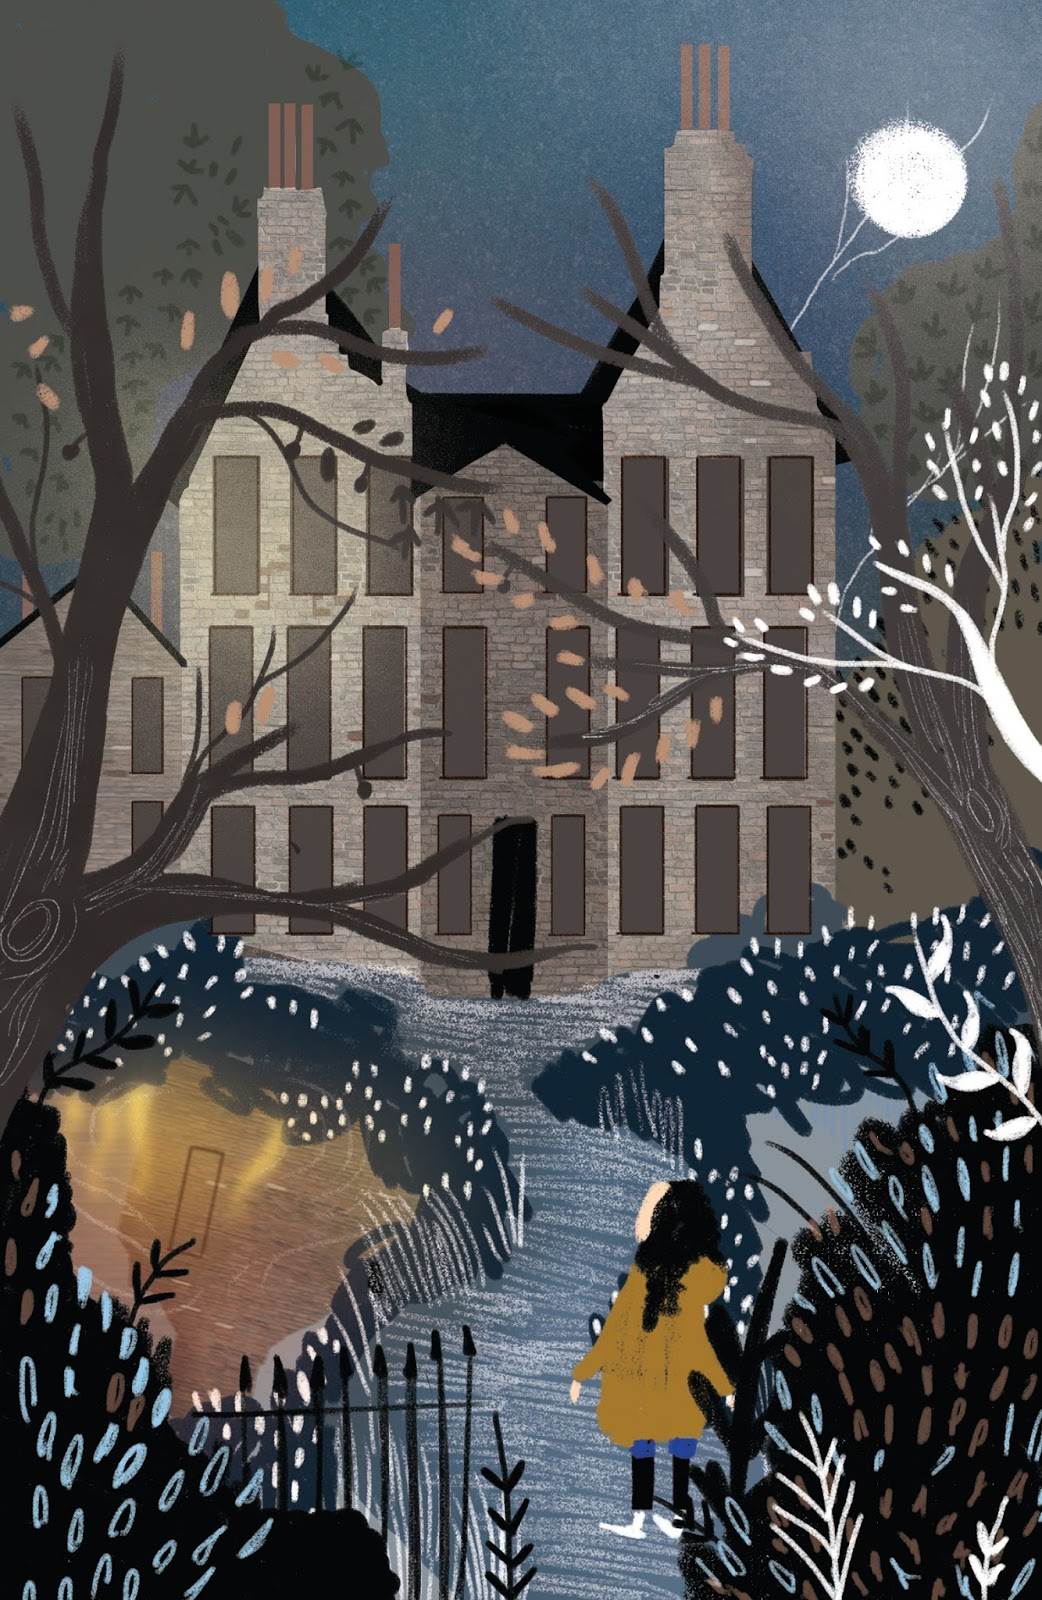 This Is The Second Progress Illustration Which Shows A Close Up Of The  House From The First Illustration This Is Similar Perspective To The Final  Book